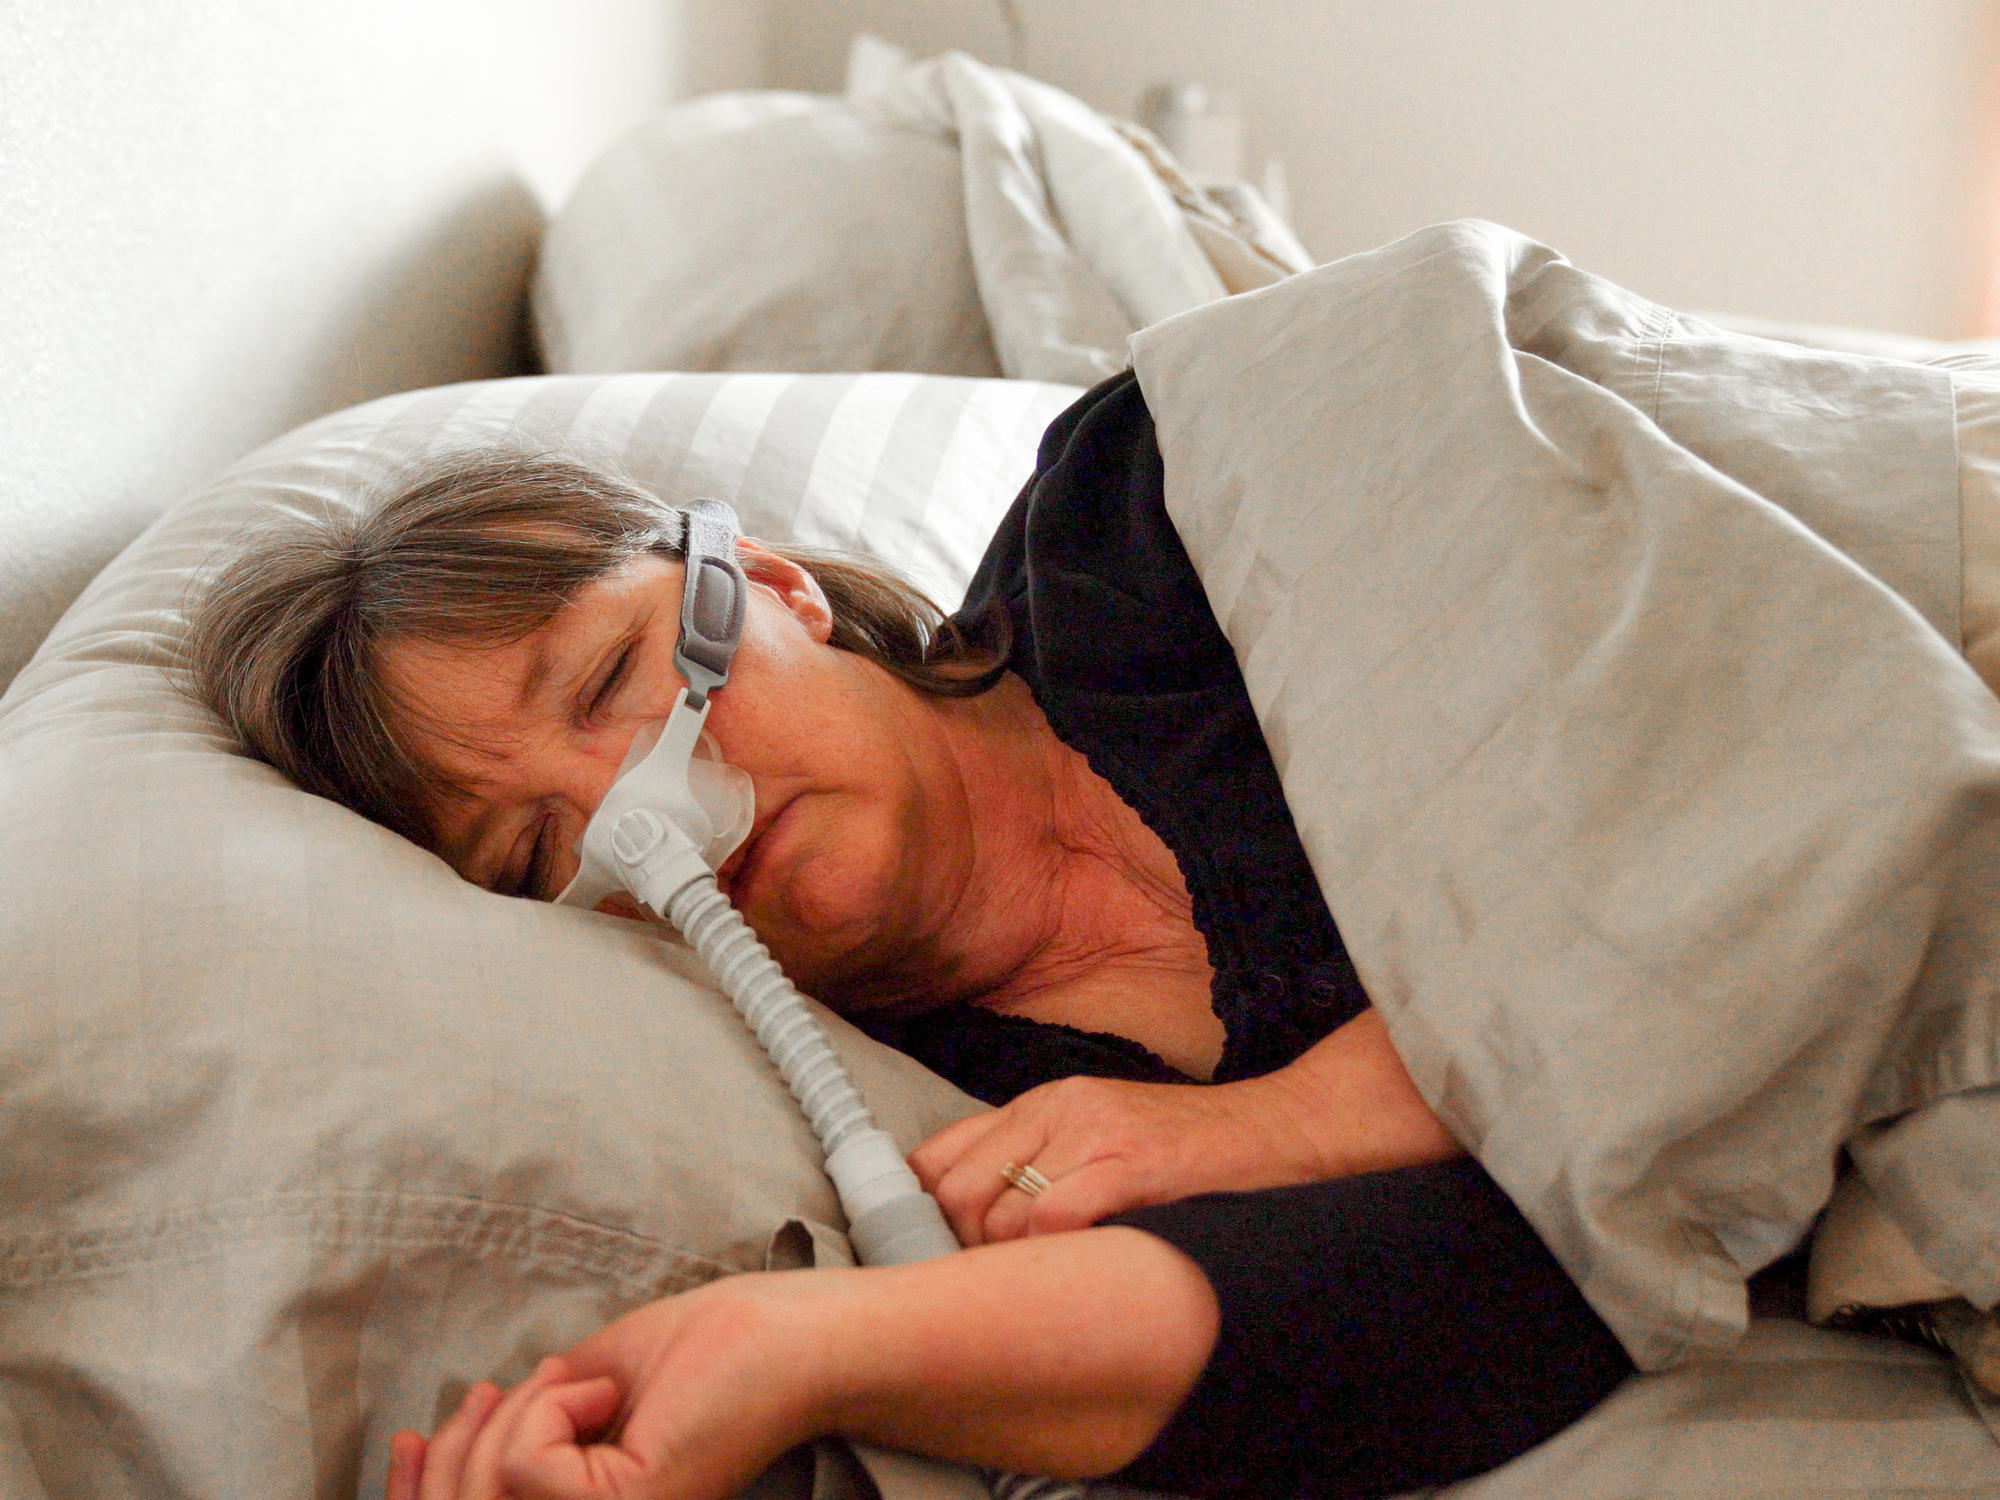 Middle Aged Woman With Sleep Apnea Asleep in a Bed Wearing a CPAP (Continuous positive airway pressure) machine to aid in her sleeping